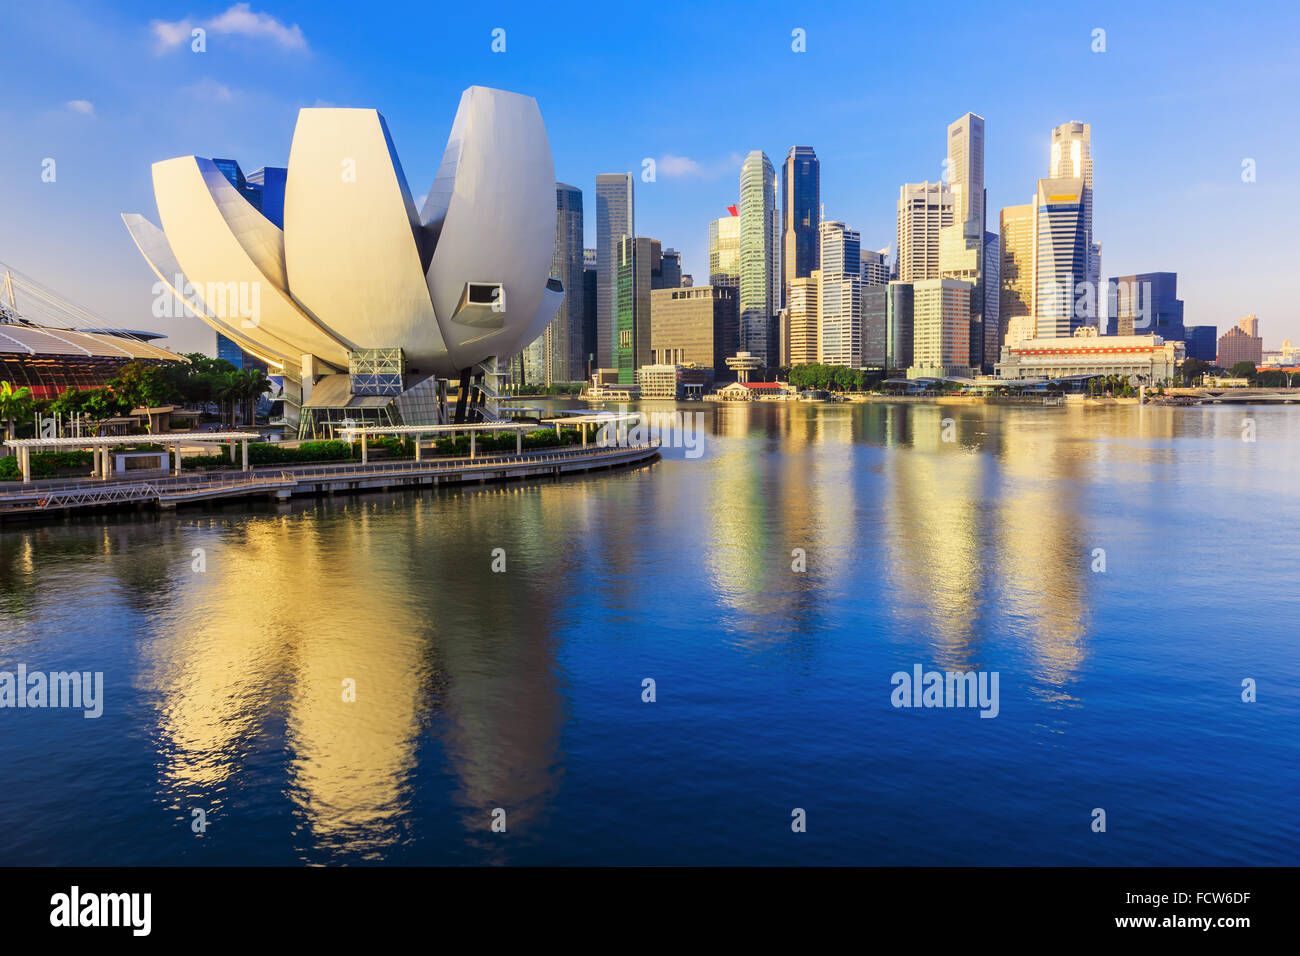 La ville de Singapour, Singapour. Marina Bay et l'horizon. Photo Stock